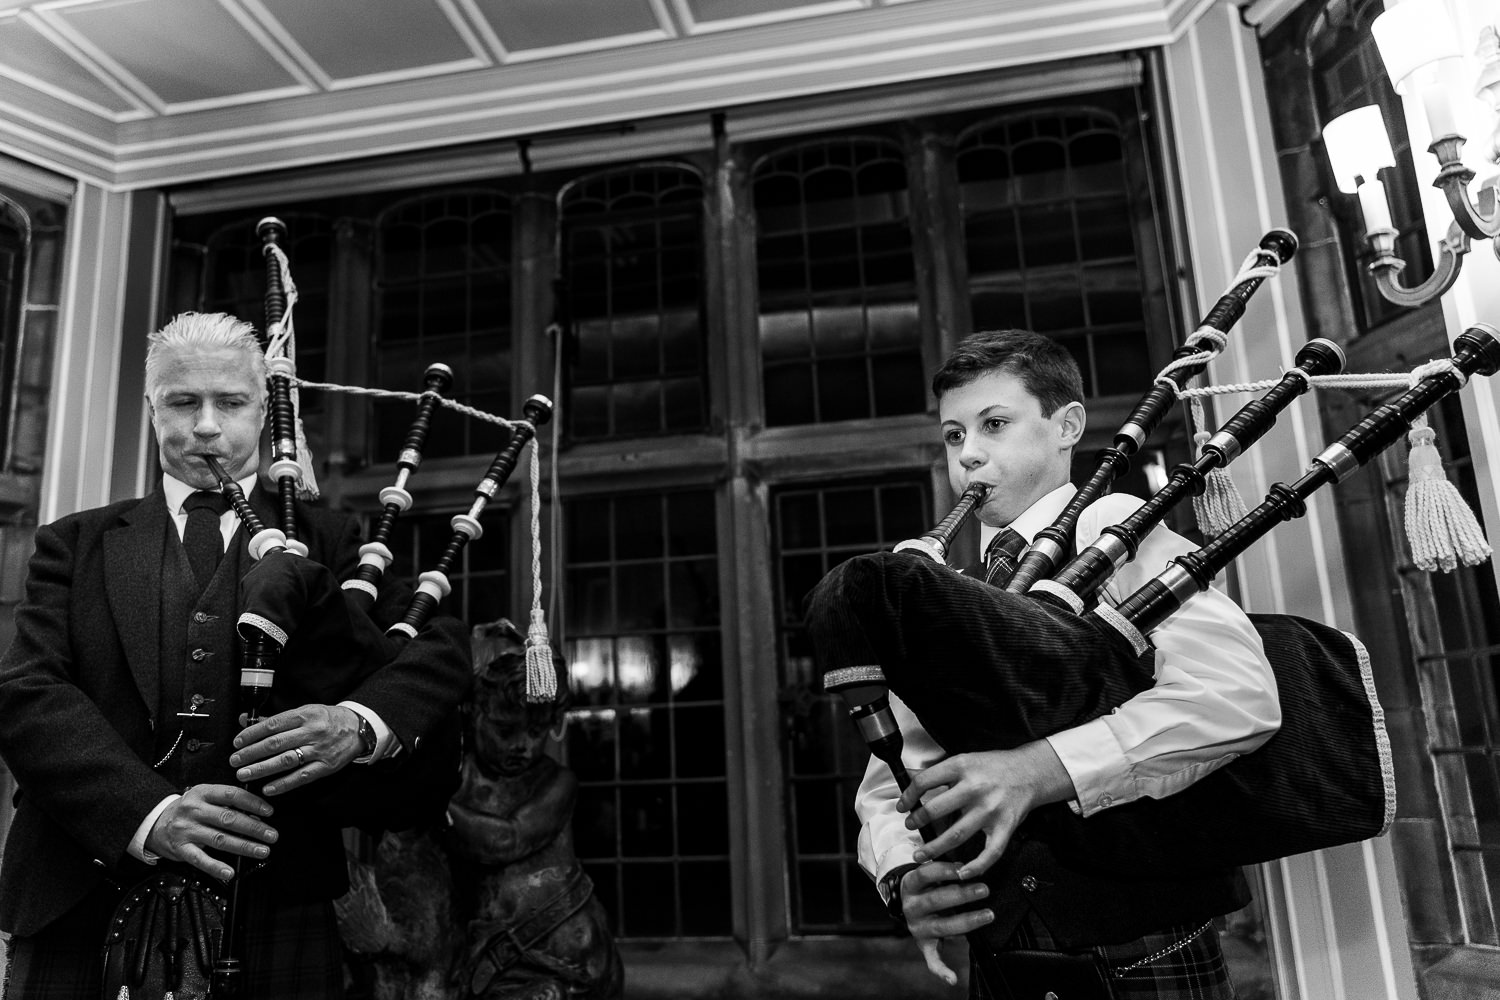 Son and dad playing the bag pipes